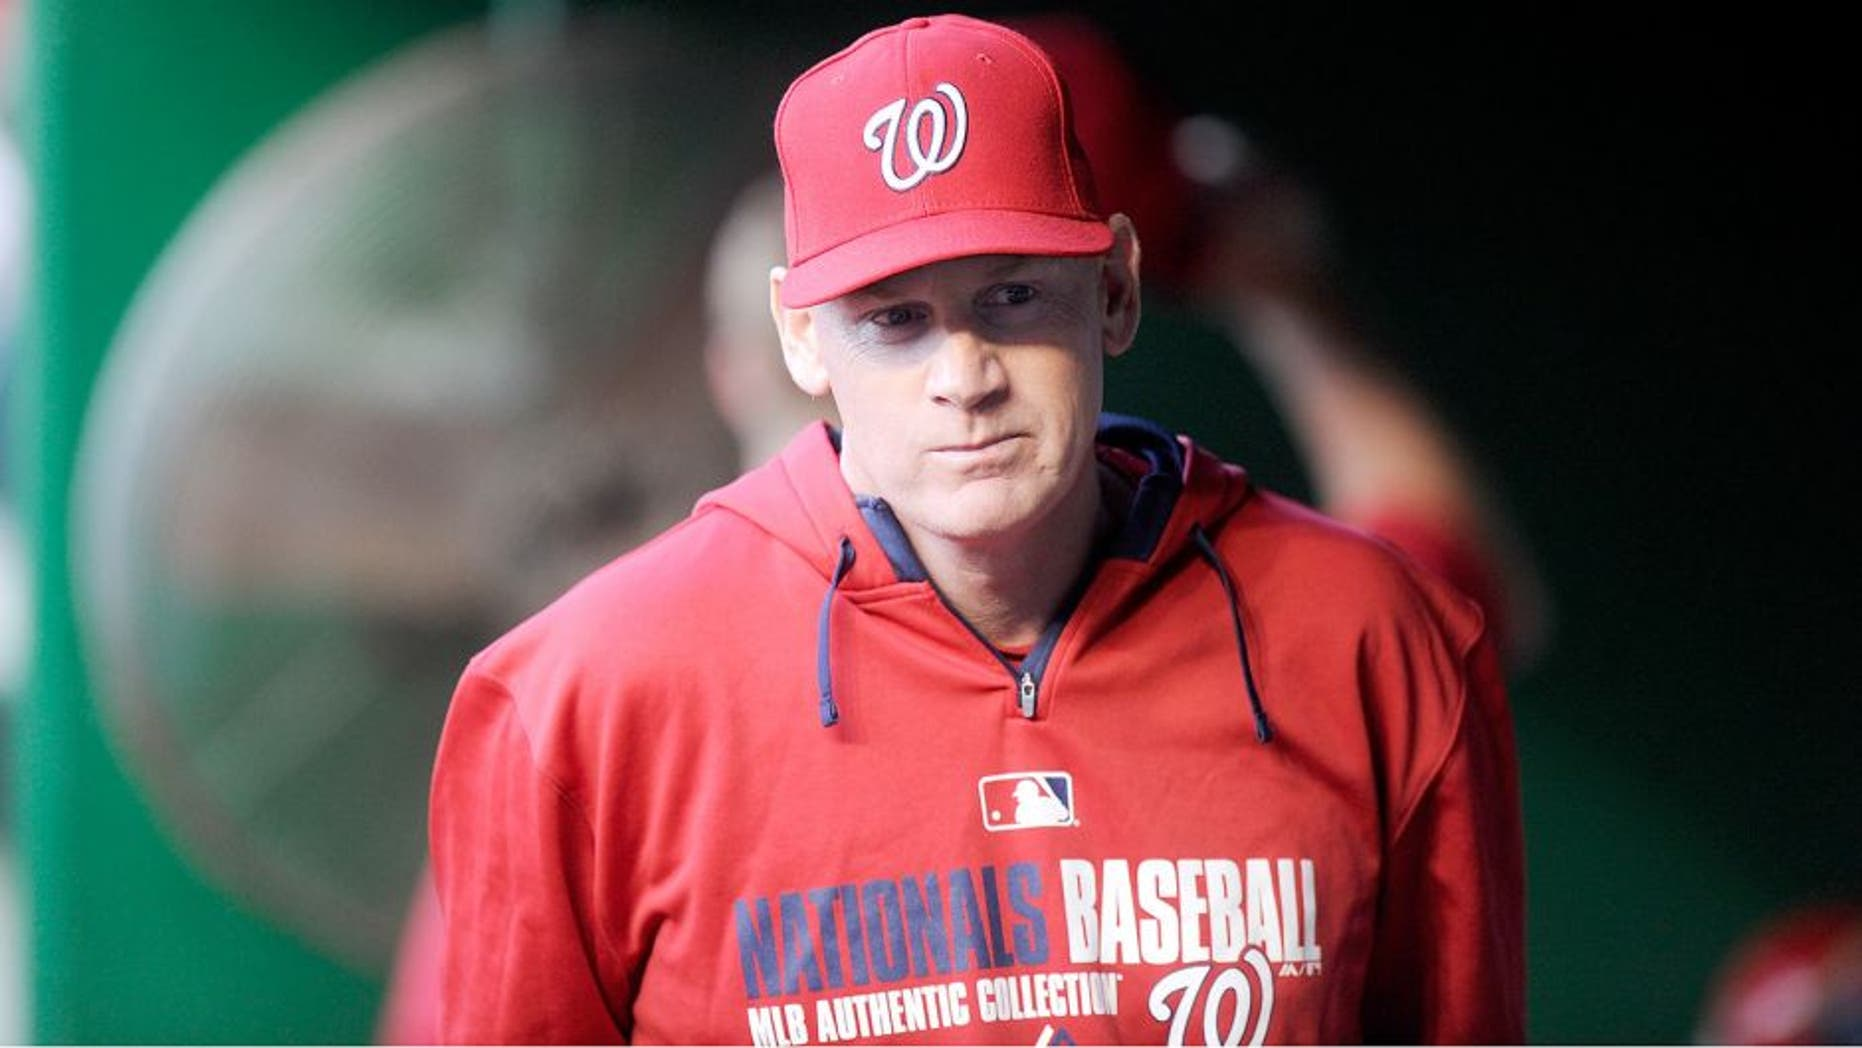 WASHINGTON, DC - APRIL 21: Manager Matt Williams #9 of the Washington Nationals watches the game against the Los Angeles Angels at Nationals Park on April 21, 2014 in Washington, DC. (Photo by G Fiume/Getty Images)